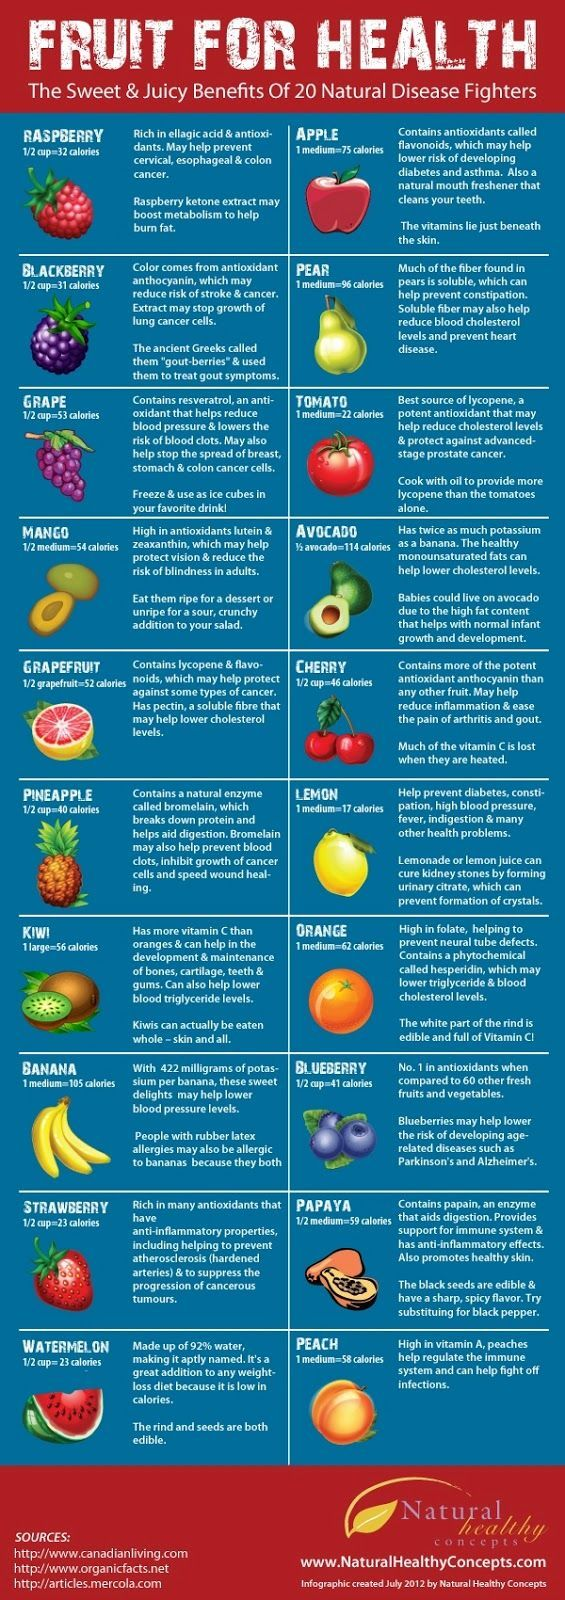 For the love of Fruit